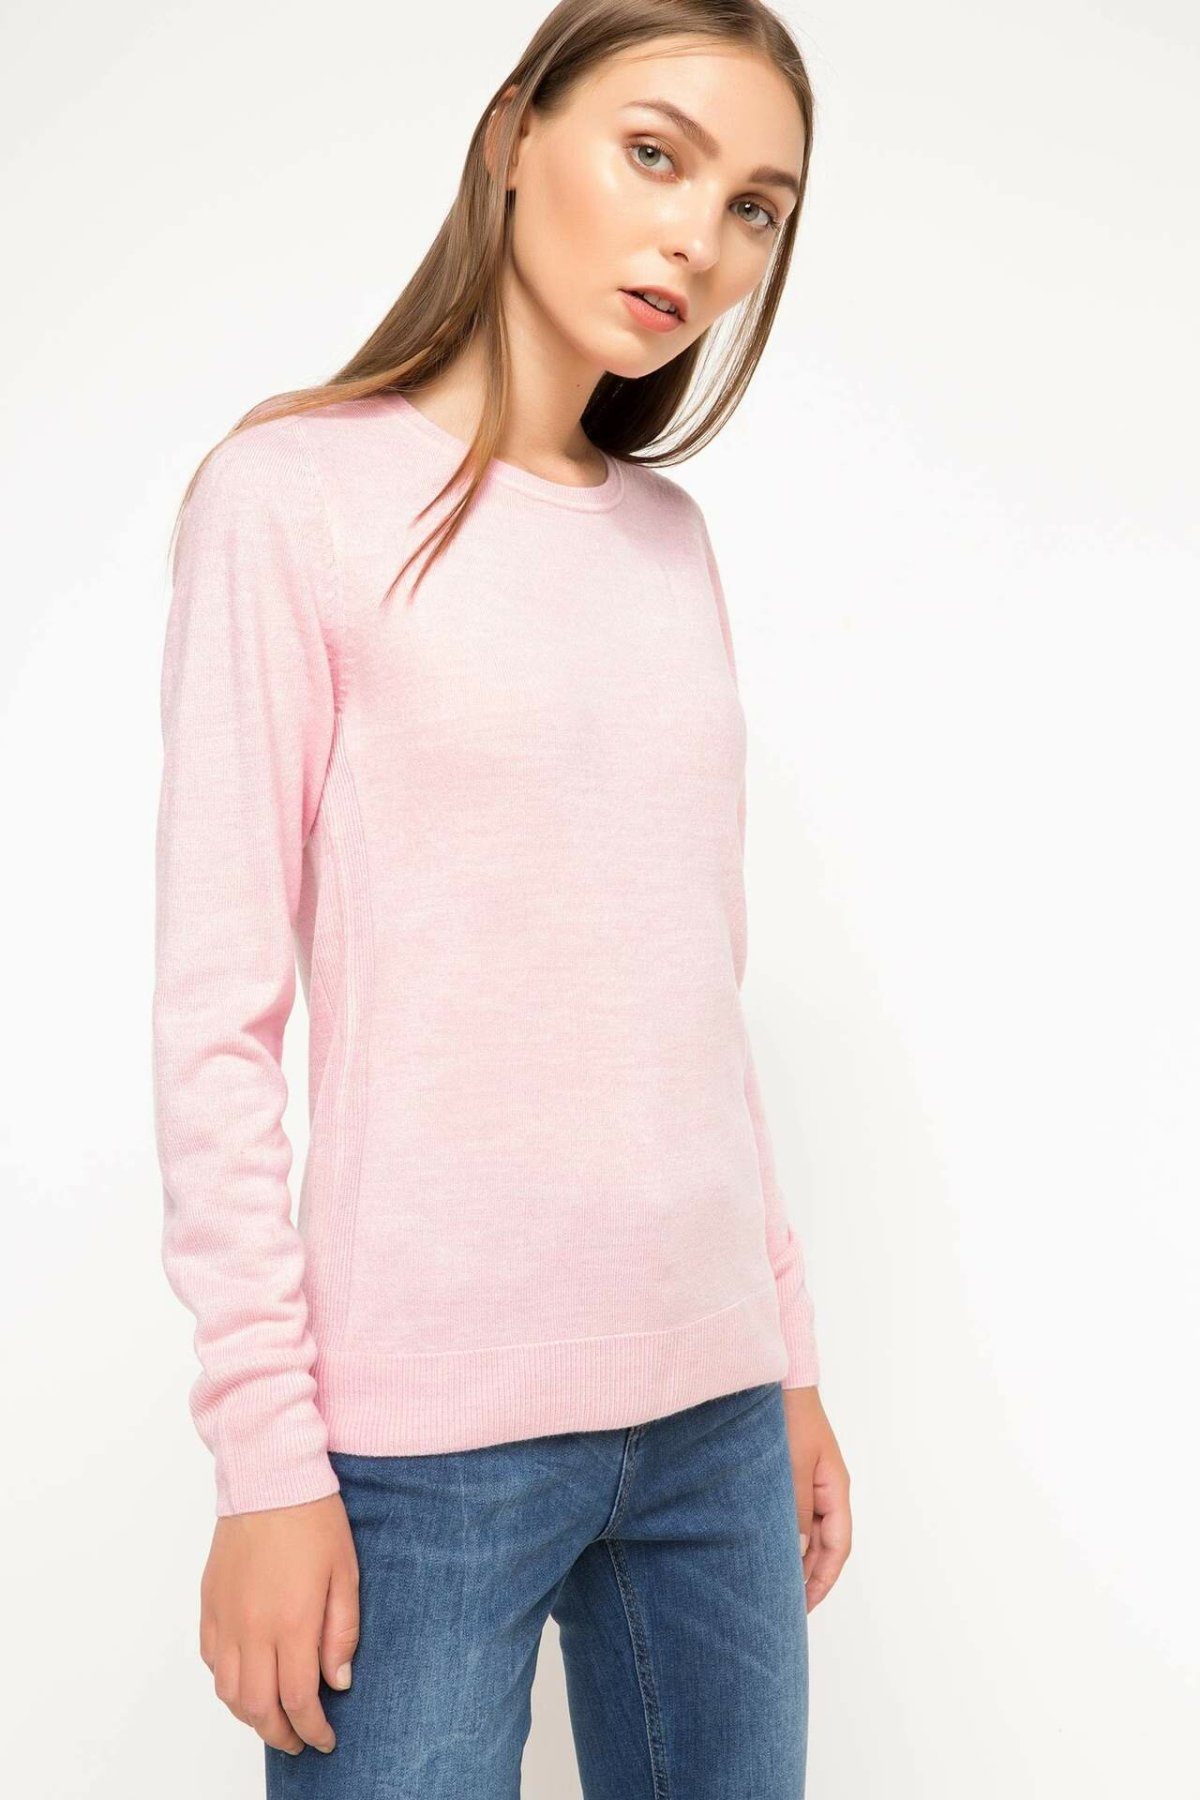 DeFacto Sweet Woman Fashion Knitted Pullover Female O-neck Long Sleeves Tops Ladies Casual Comfort Autumn New- F7091AZ17AU